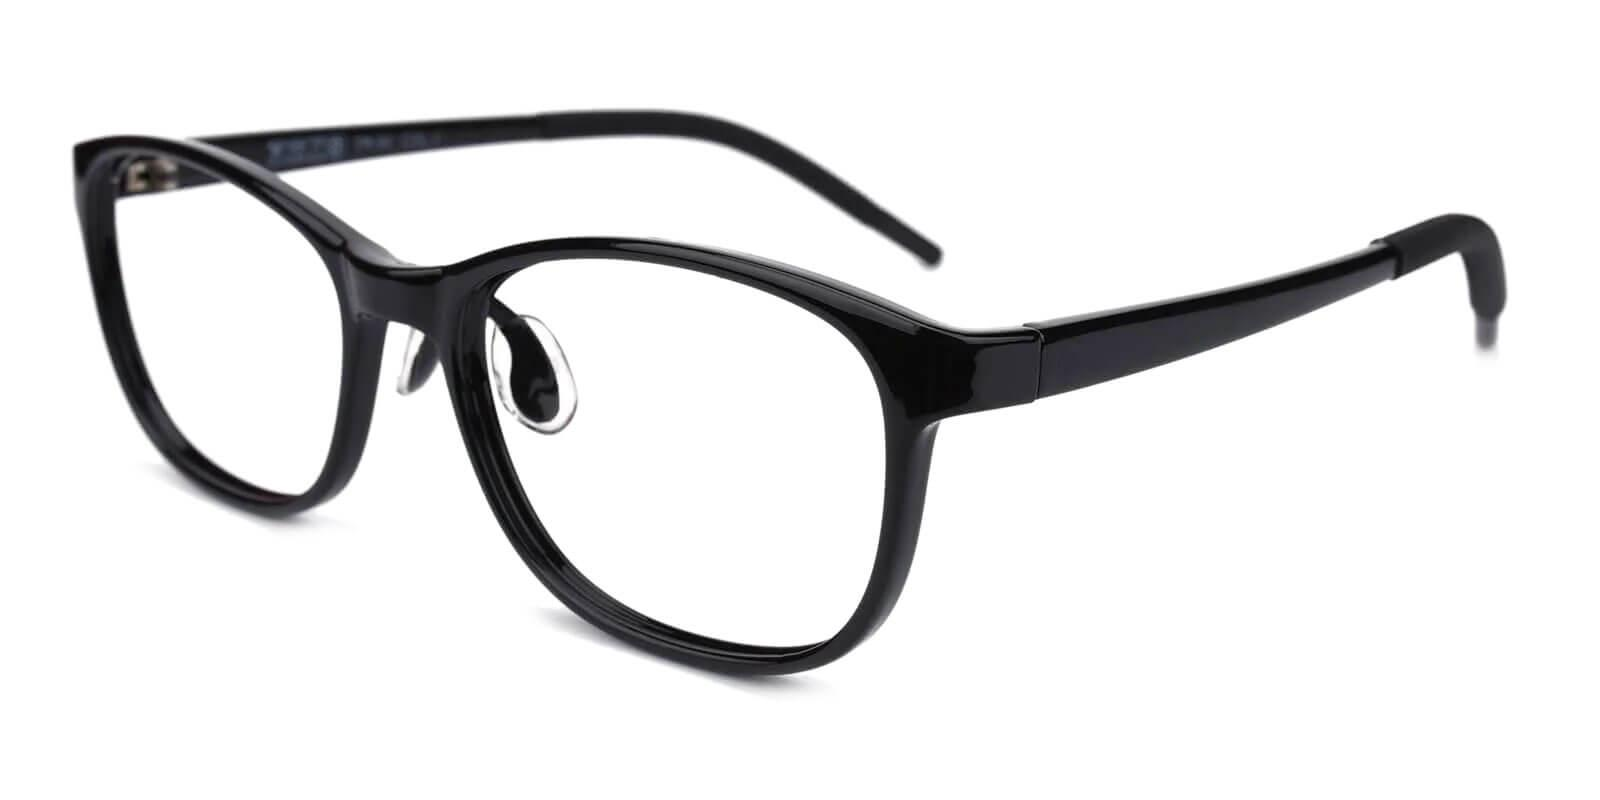 Kids-Coco Black TR Eyeglasses , Lightweight , UniversalBridgeFit Frames from ABBE Glasses